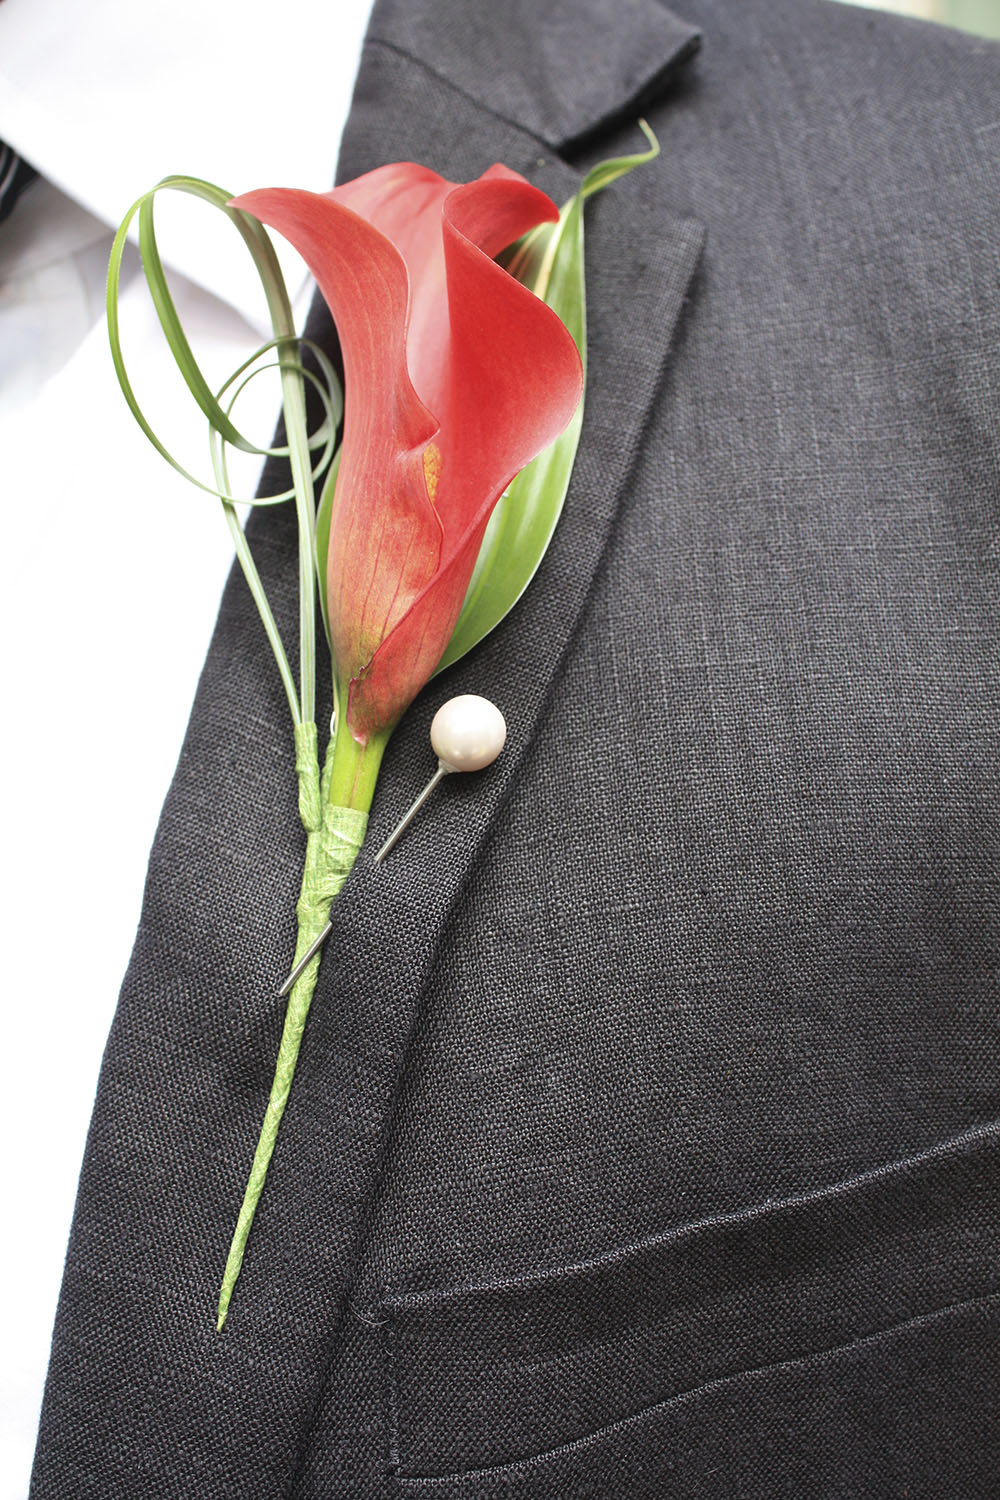 Buttonhole-whiteandwinsome.jpeg